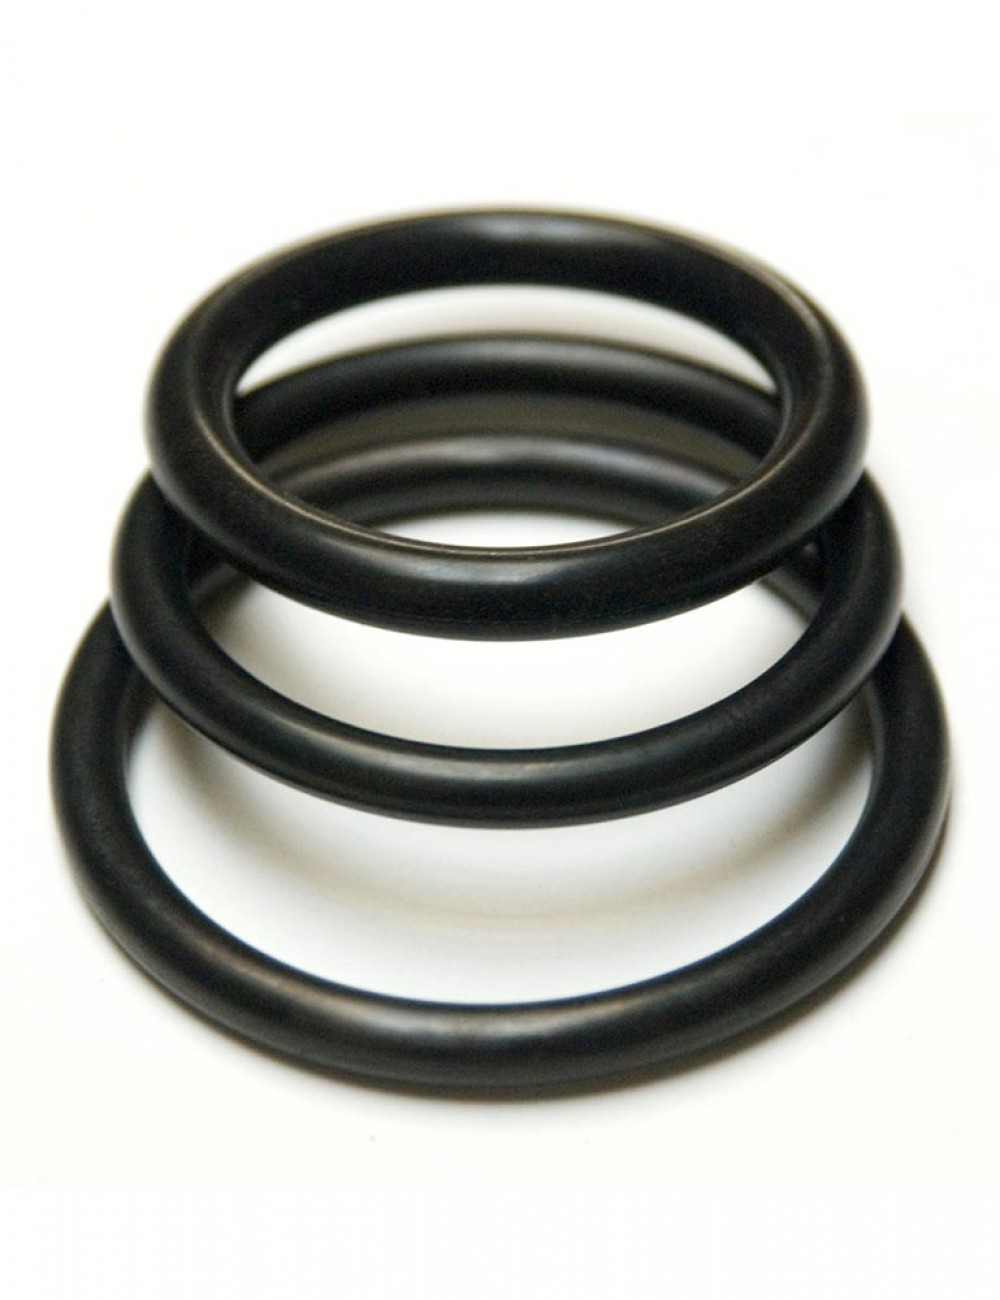 KinkLab Rubber Cock Rings, 3-Pack